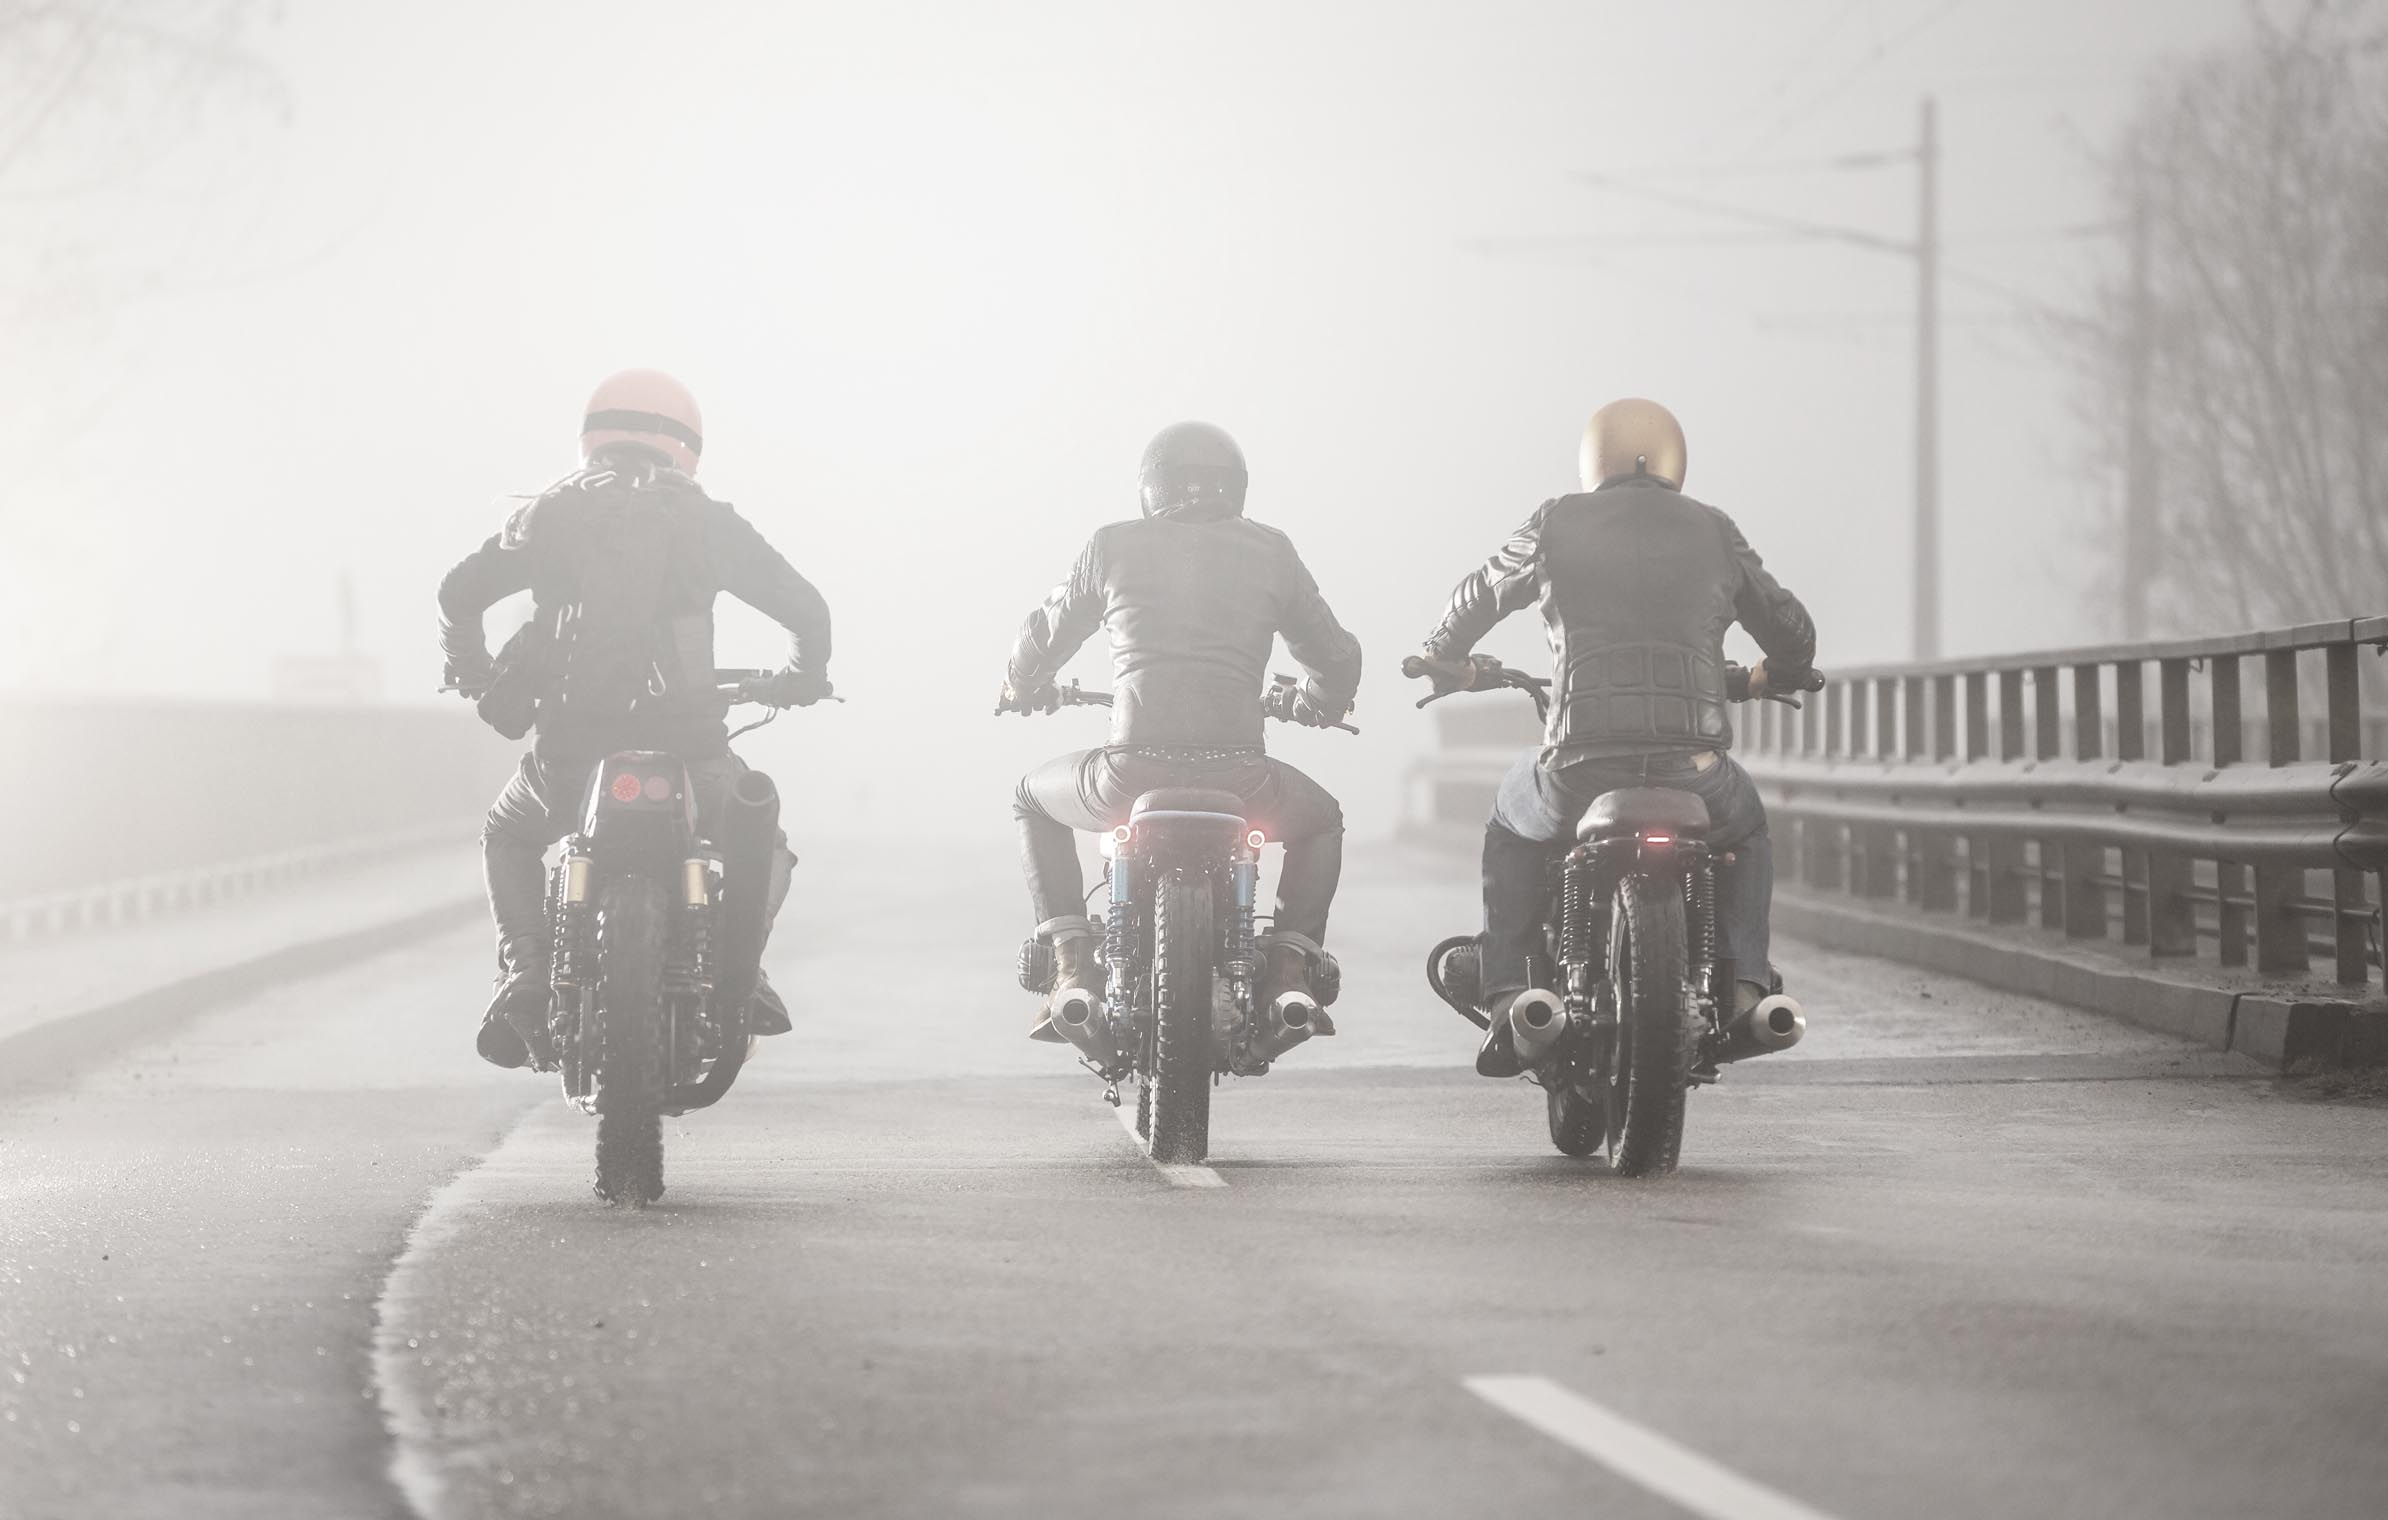 titan_roadtrip_motorcycles_beforeridingchat_street_three_bmw_kawa_foggy_morning_back